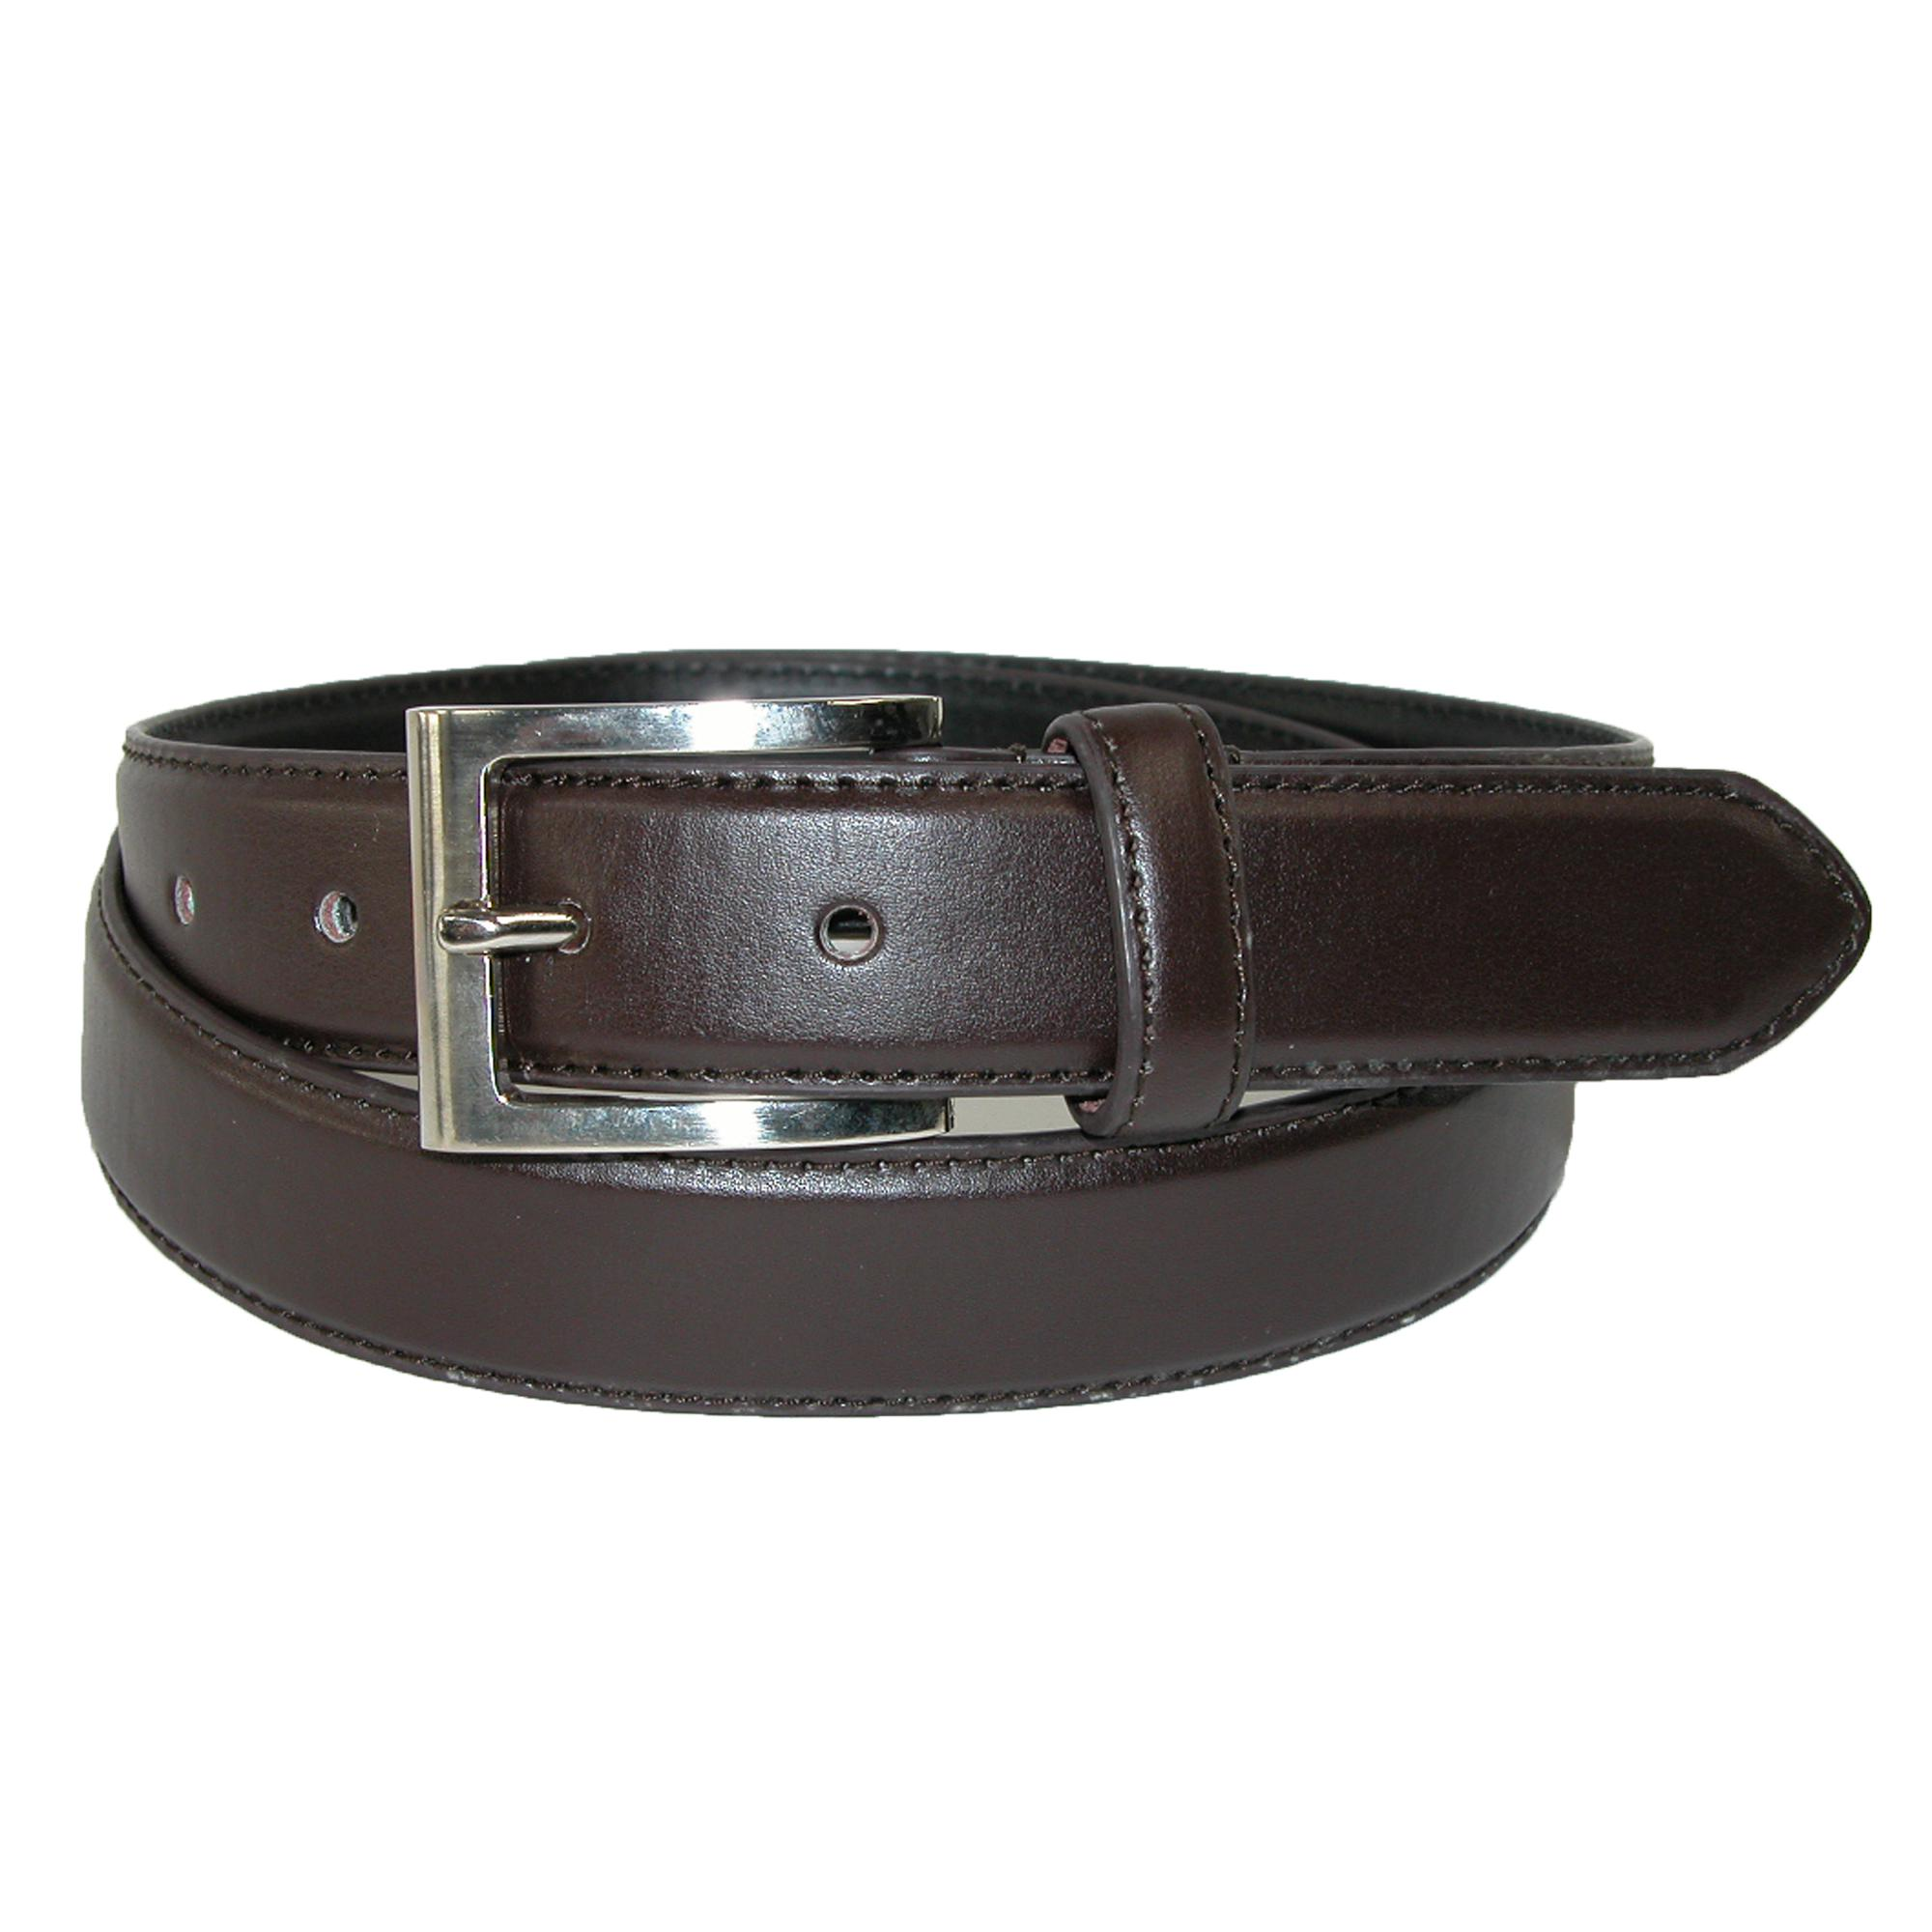 CTM_Men's_Leather_1_1_8_Inch_Basic_Dress_Belt_with_Silver_Buckle_-